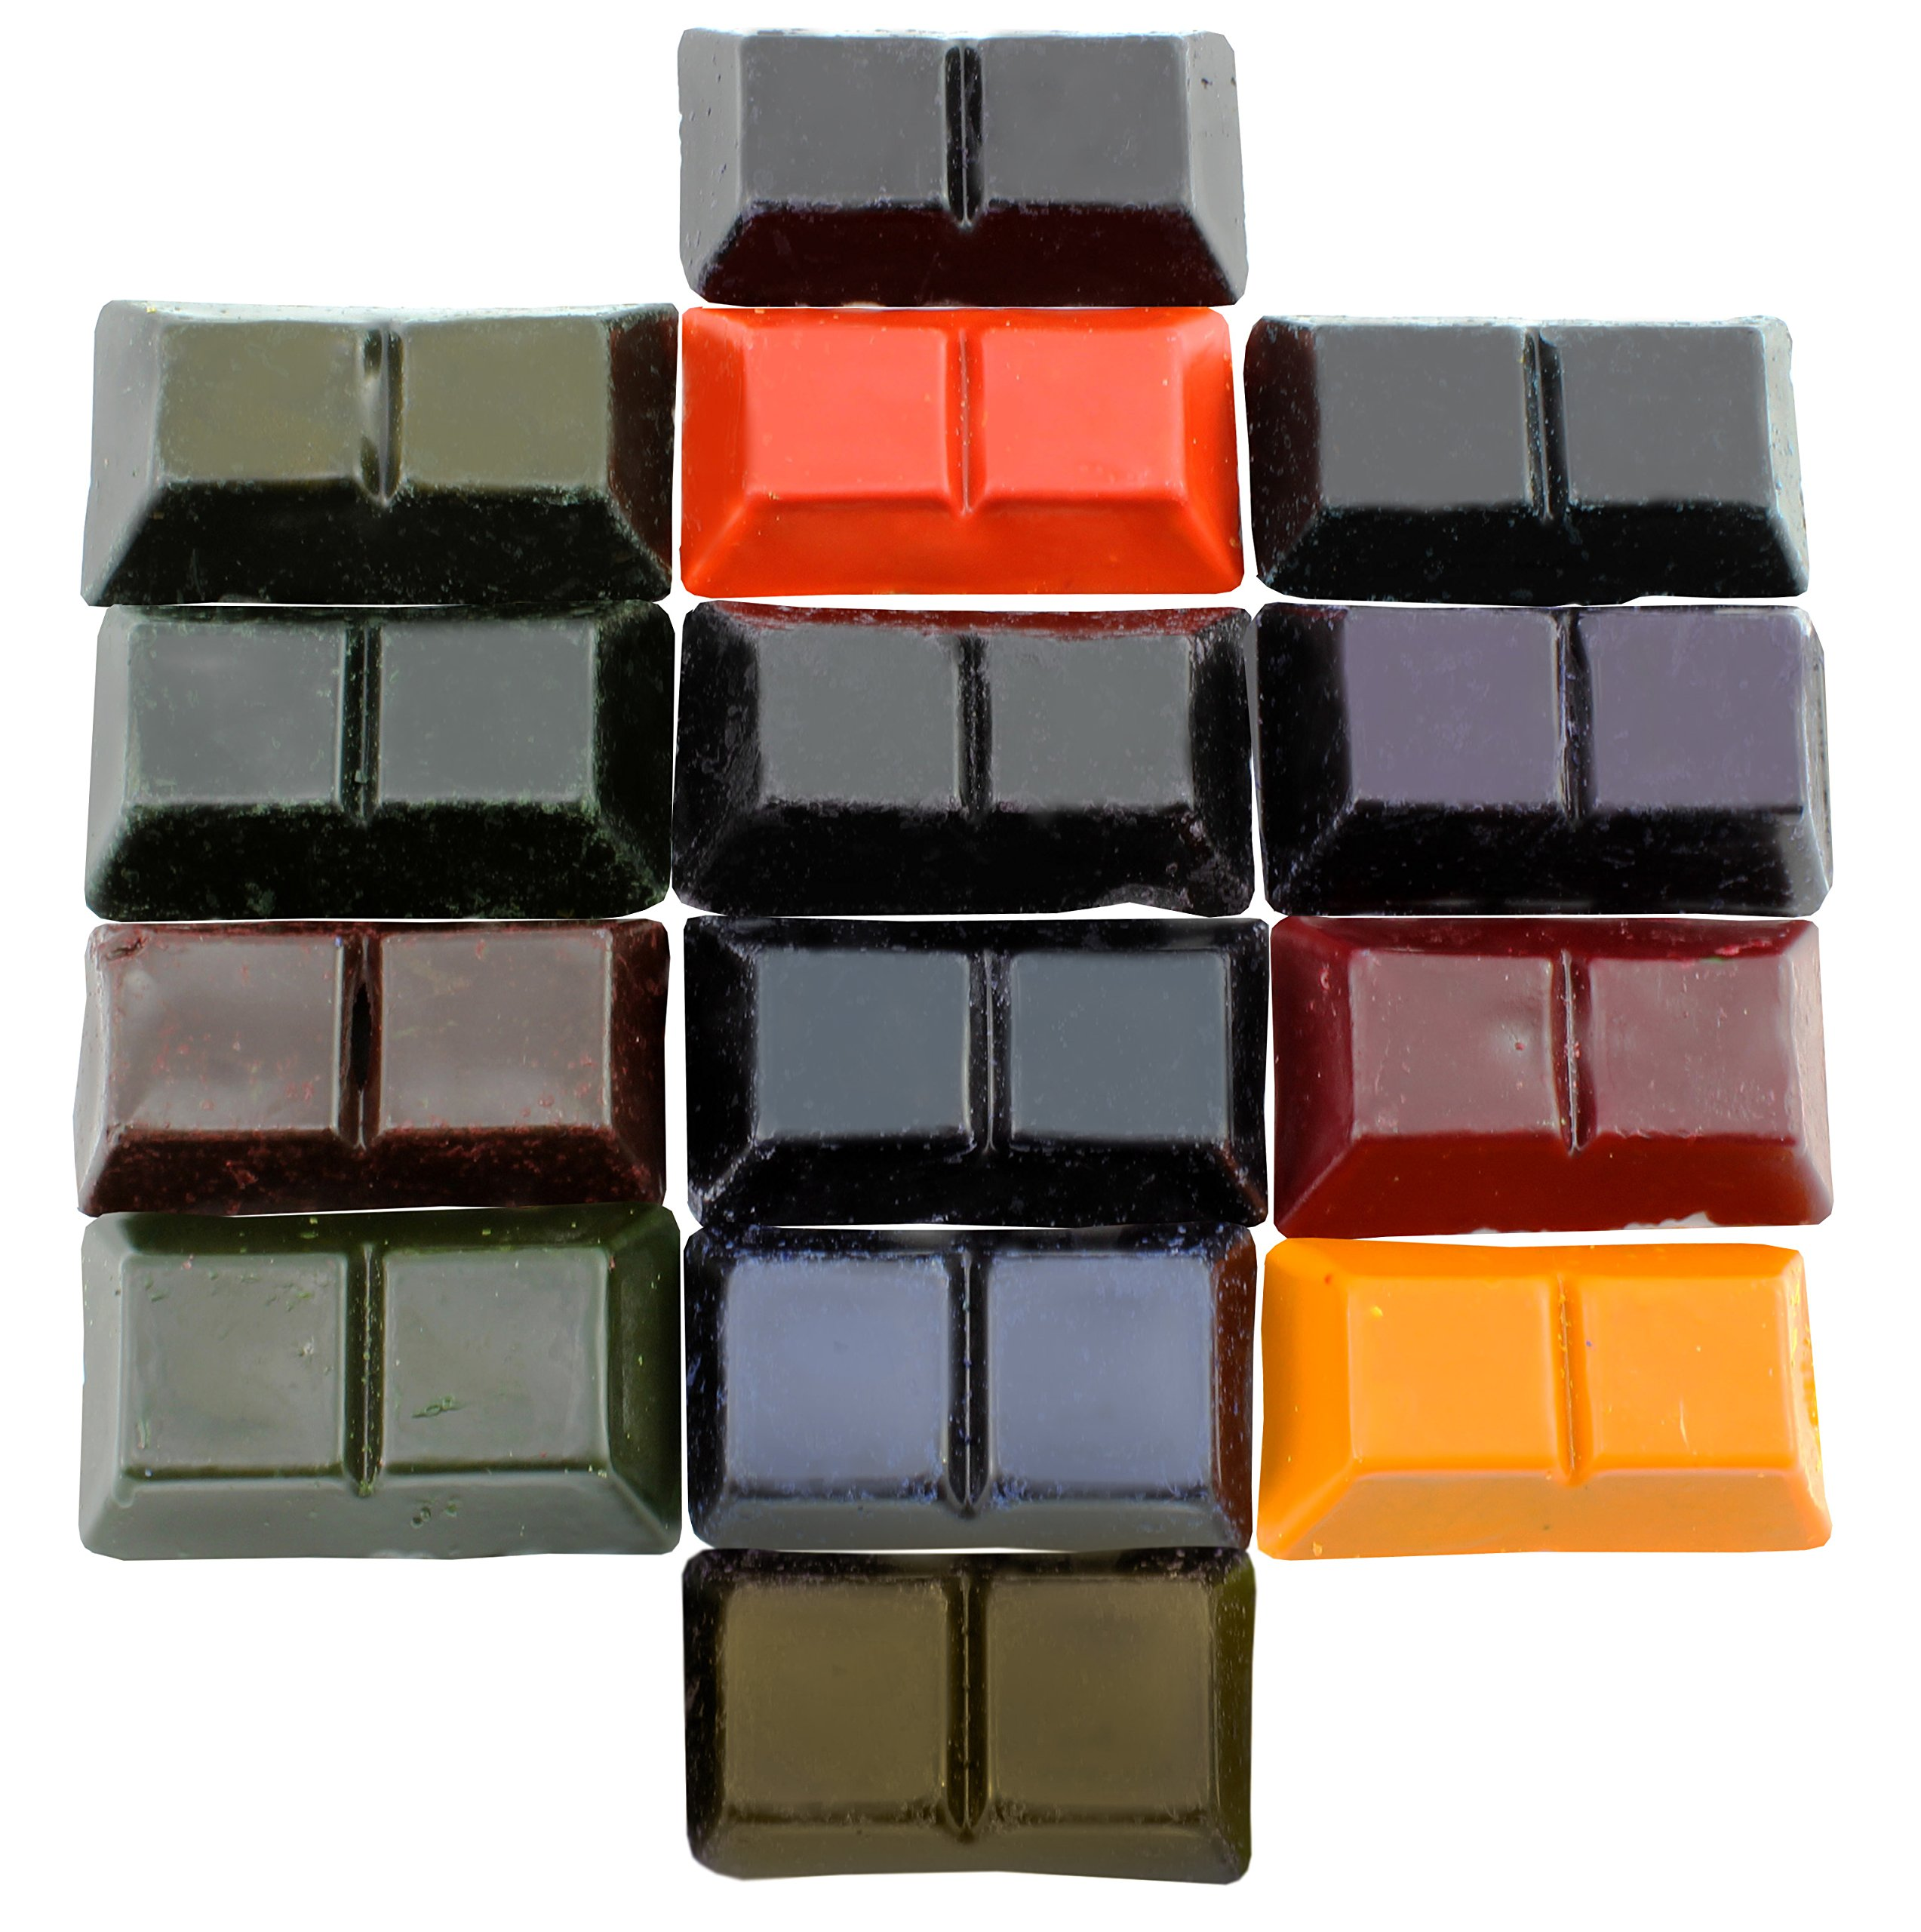 Candle Making Dye Block Color Variety Pack (14-Color Pack, 7oz Total); Candlemaker's Colors Sampler 25-200Lbs Wax w/ Red, Blue, Orange, Green, Purple, Yellow, Black, Pink, Brown Etc